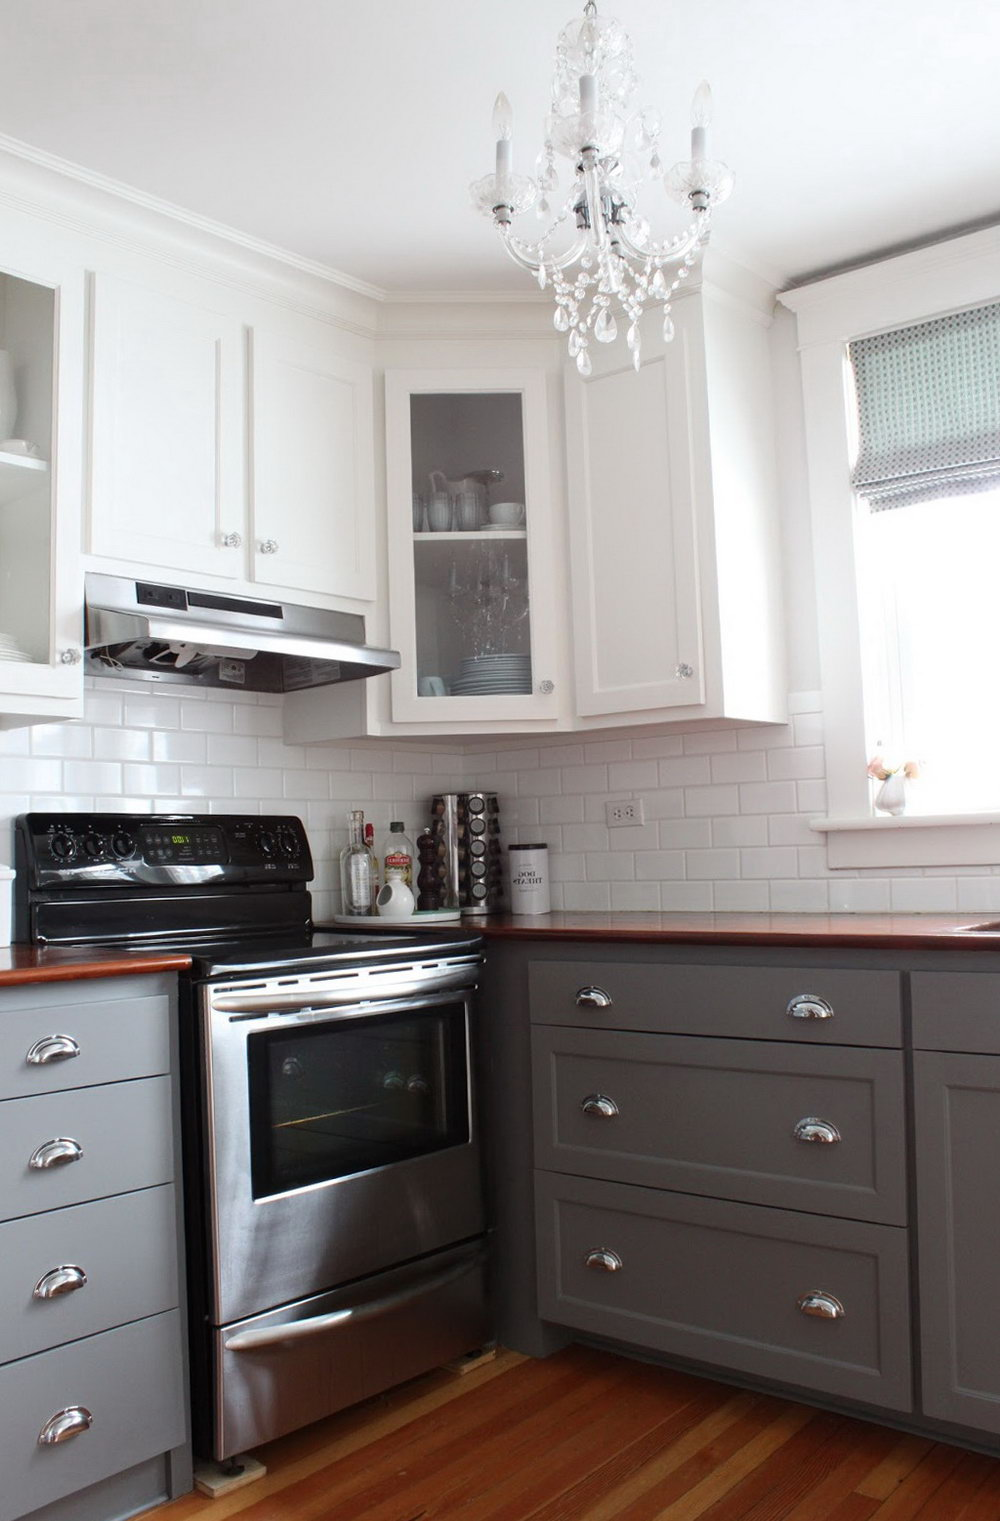 Kitchen Cabinets White Top Grey Bottom